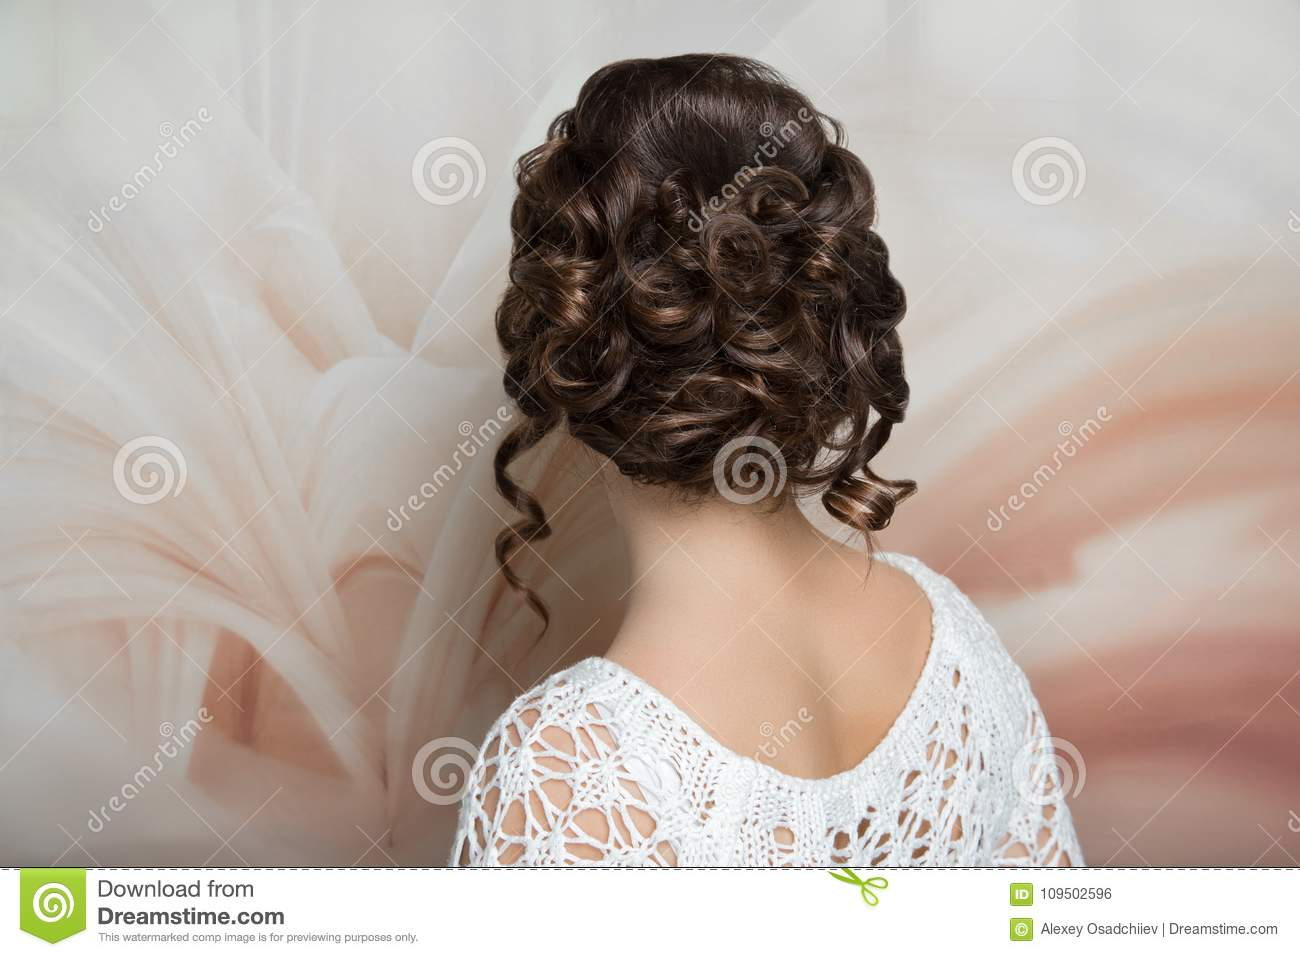 Woman Hairstyle Gathered Hairdo Curls Stock Photo - Image of